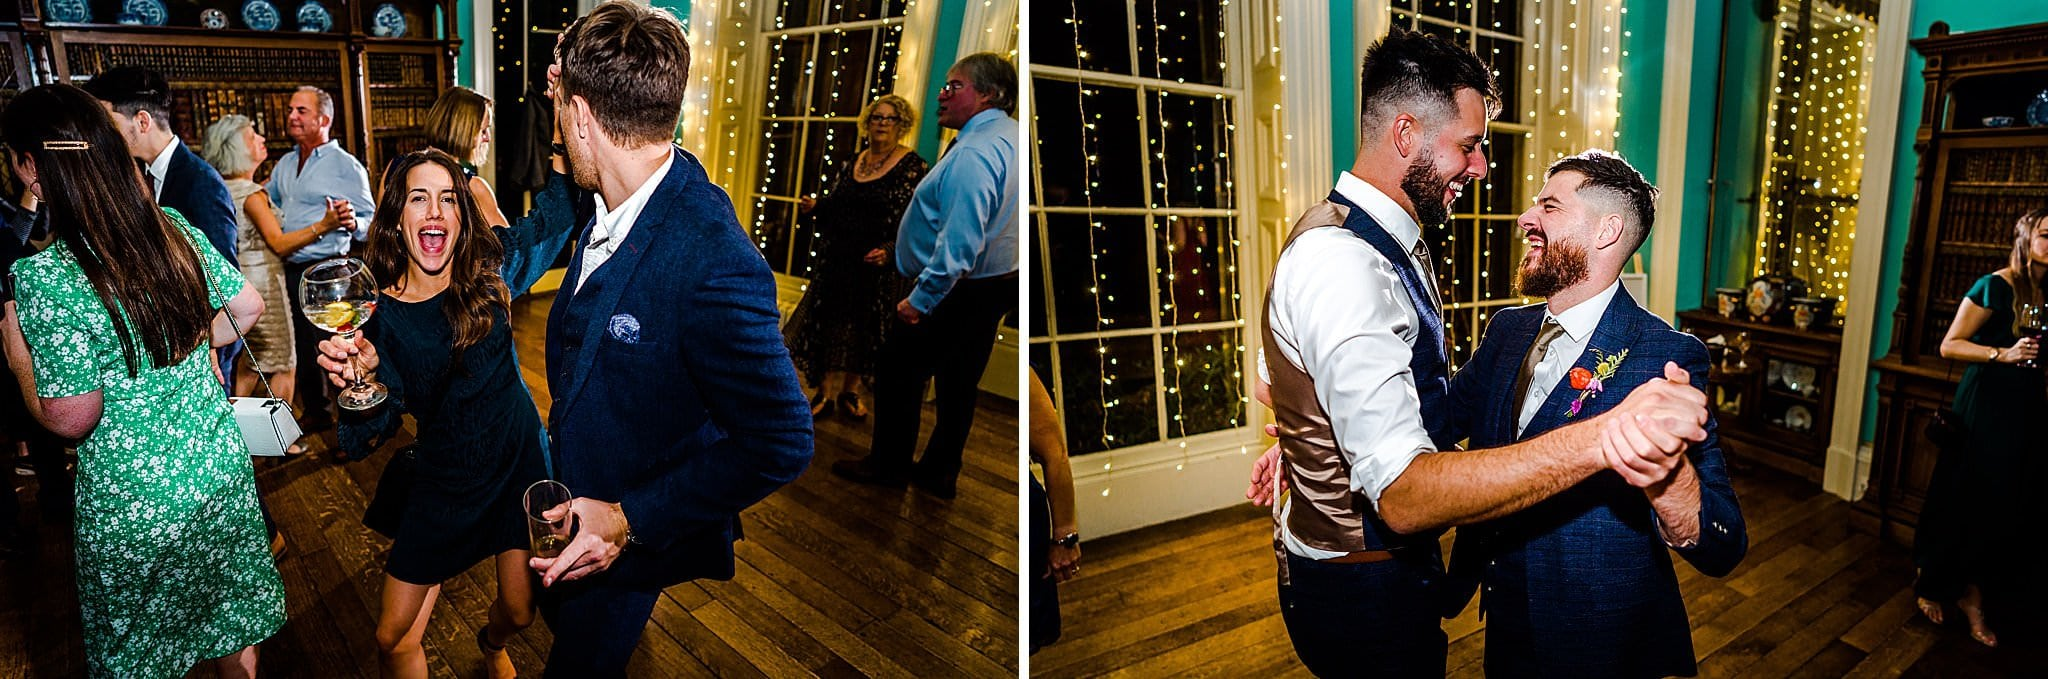 Groom dances with his best man at Prestwold Hall